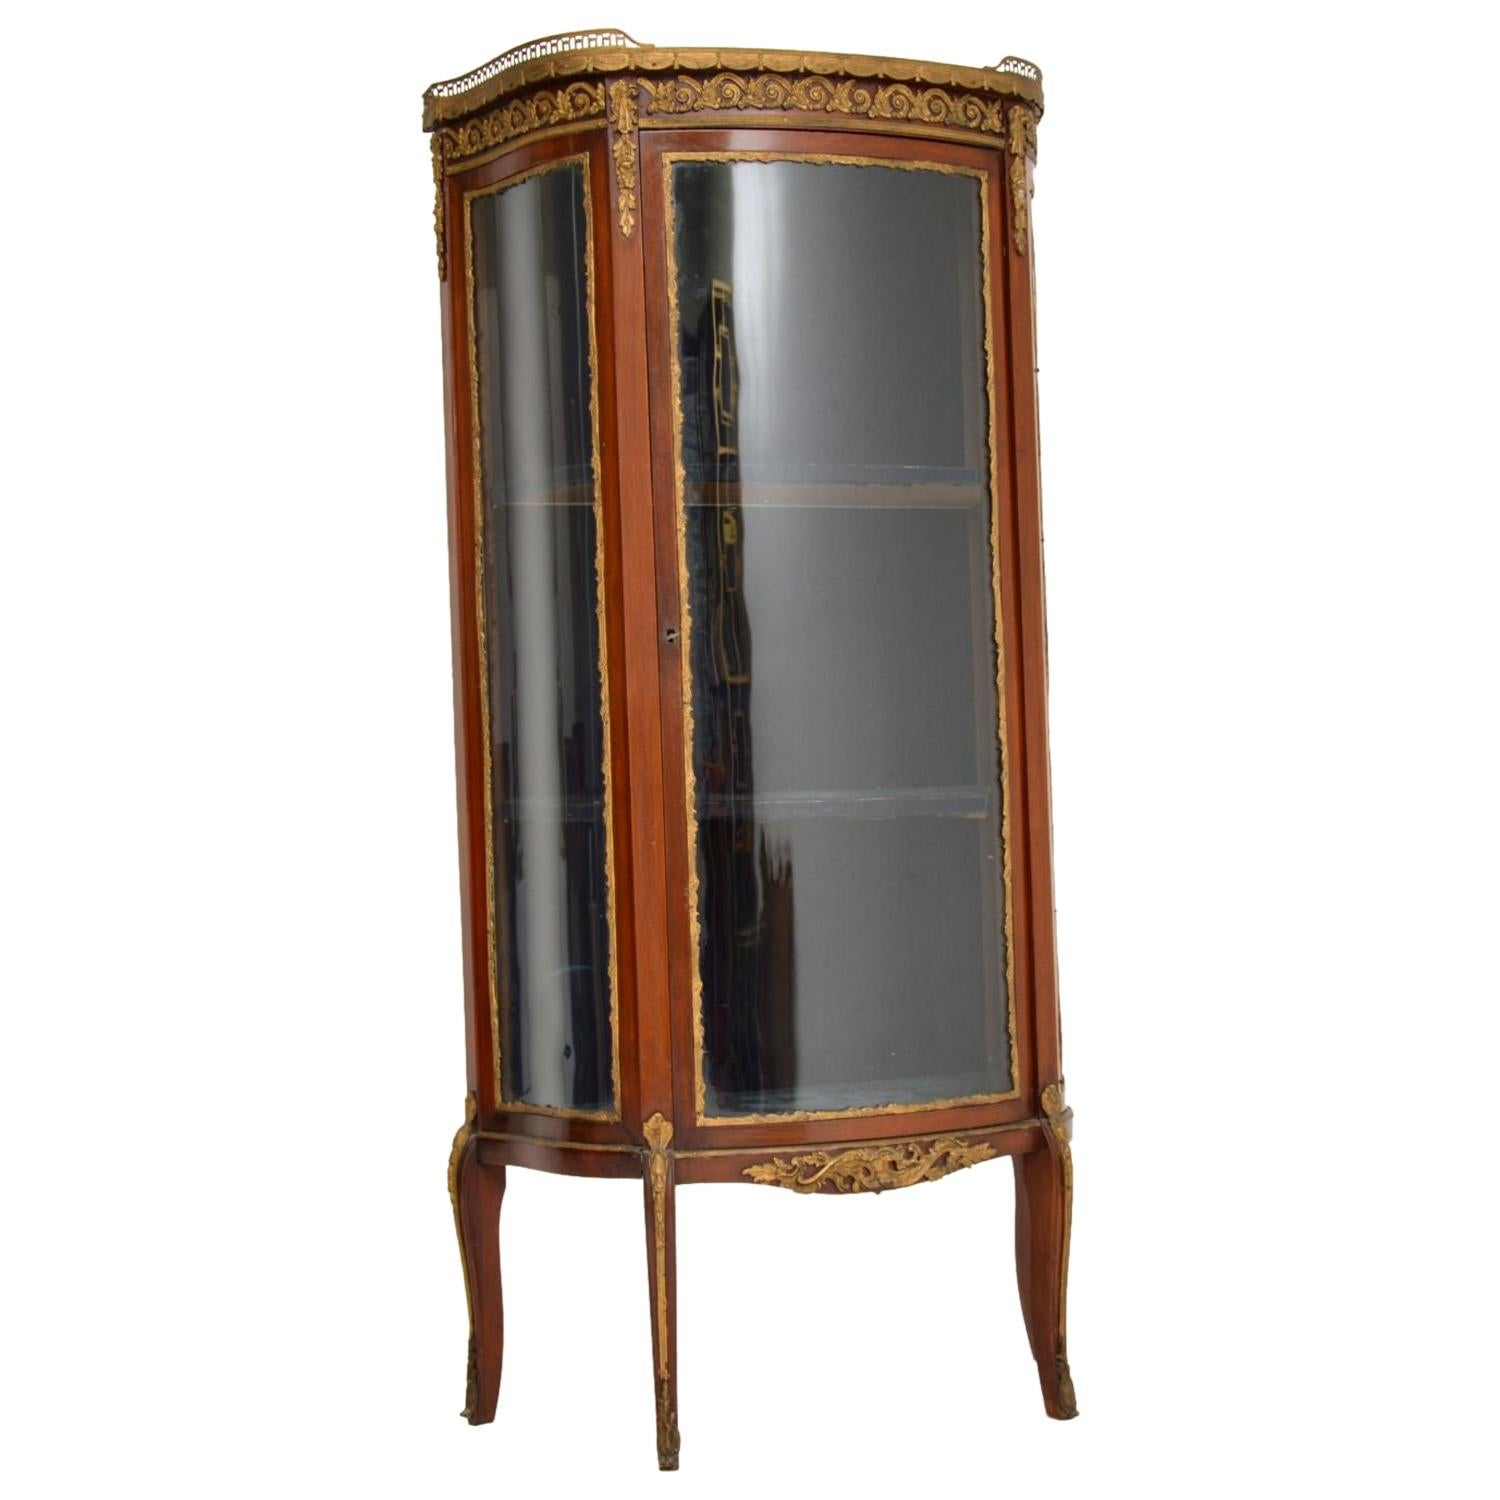 Antique French Mahogany and Marble Display Cabinet Vitrine